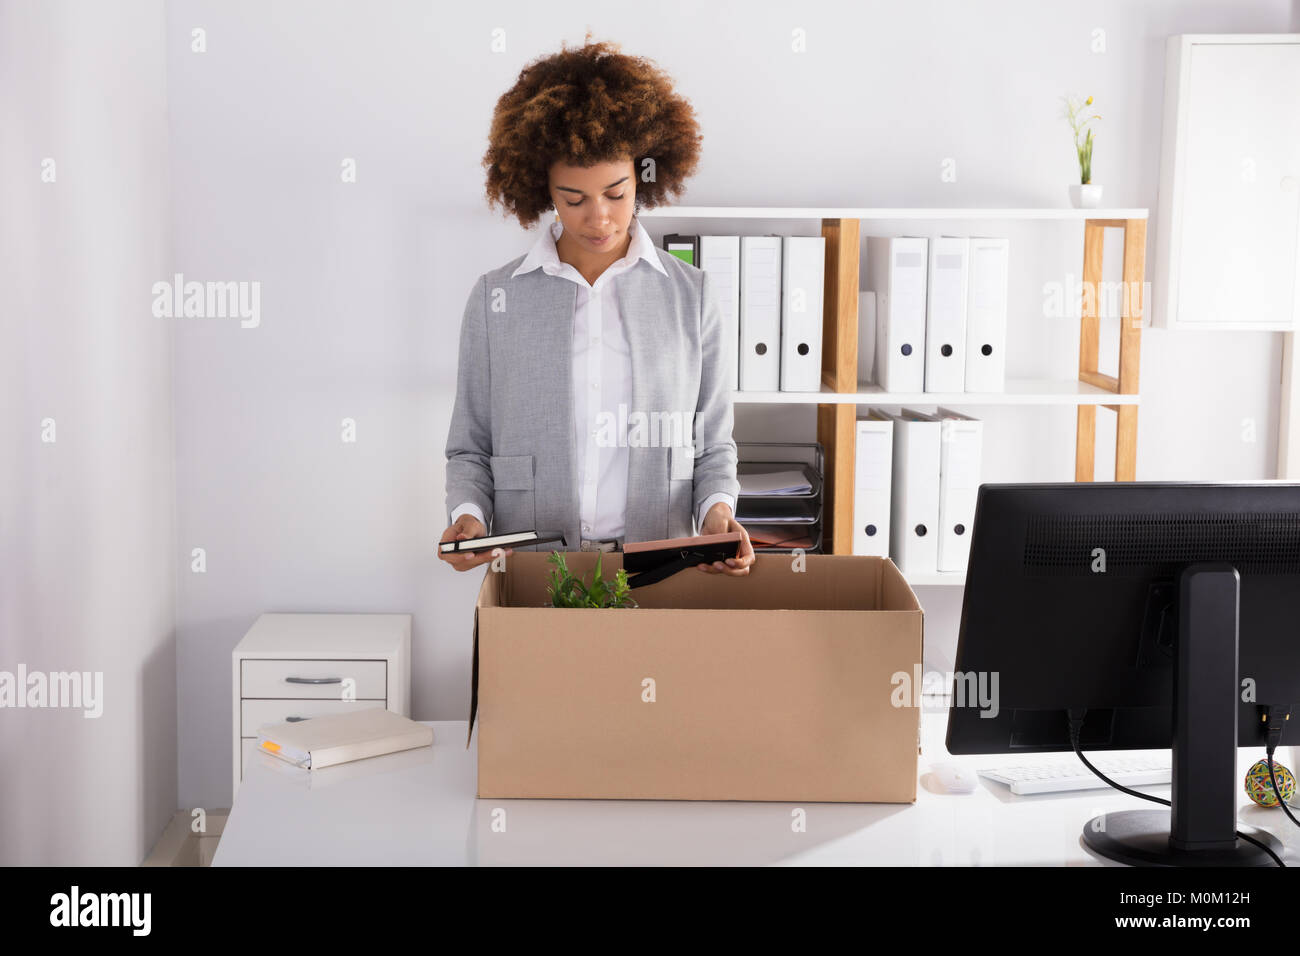 Sad Young Businesswoman Packing Her Belongings In Cardboard Box At Workplace - Stock Image